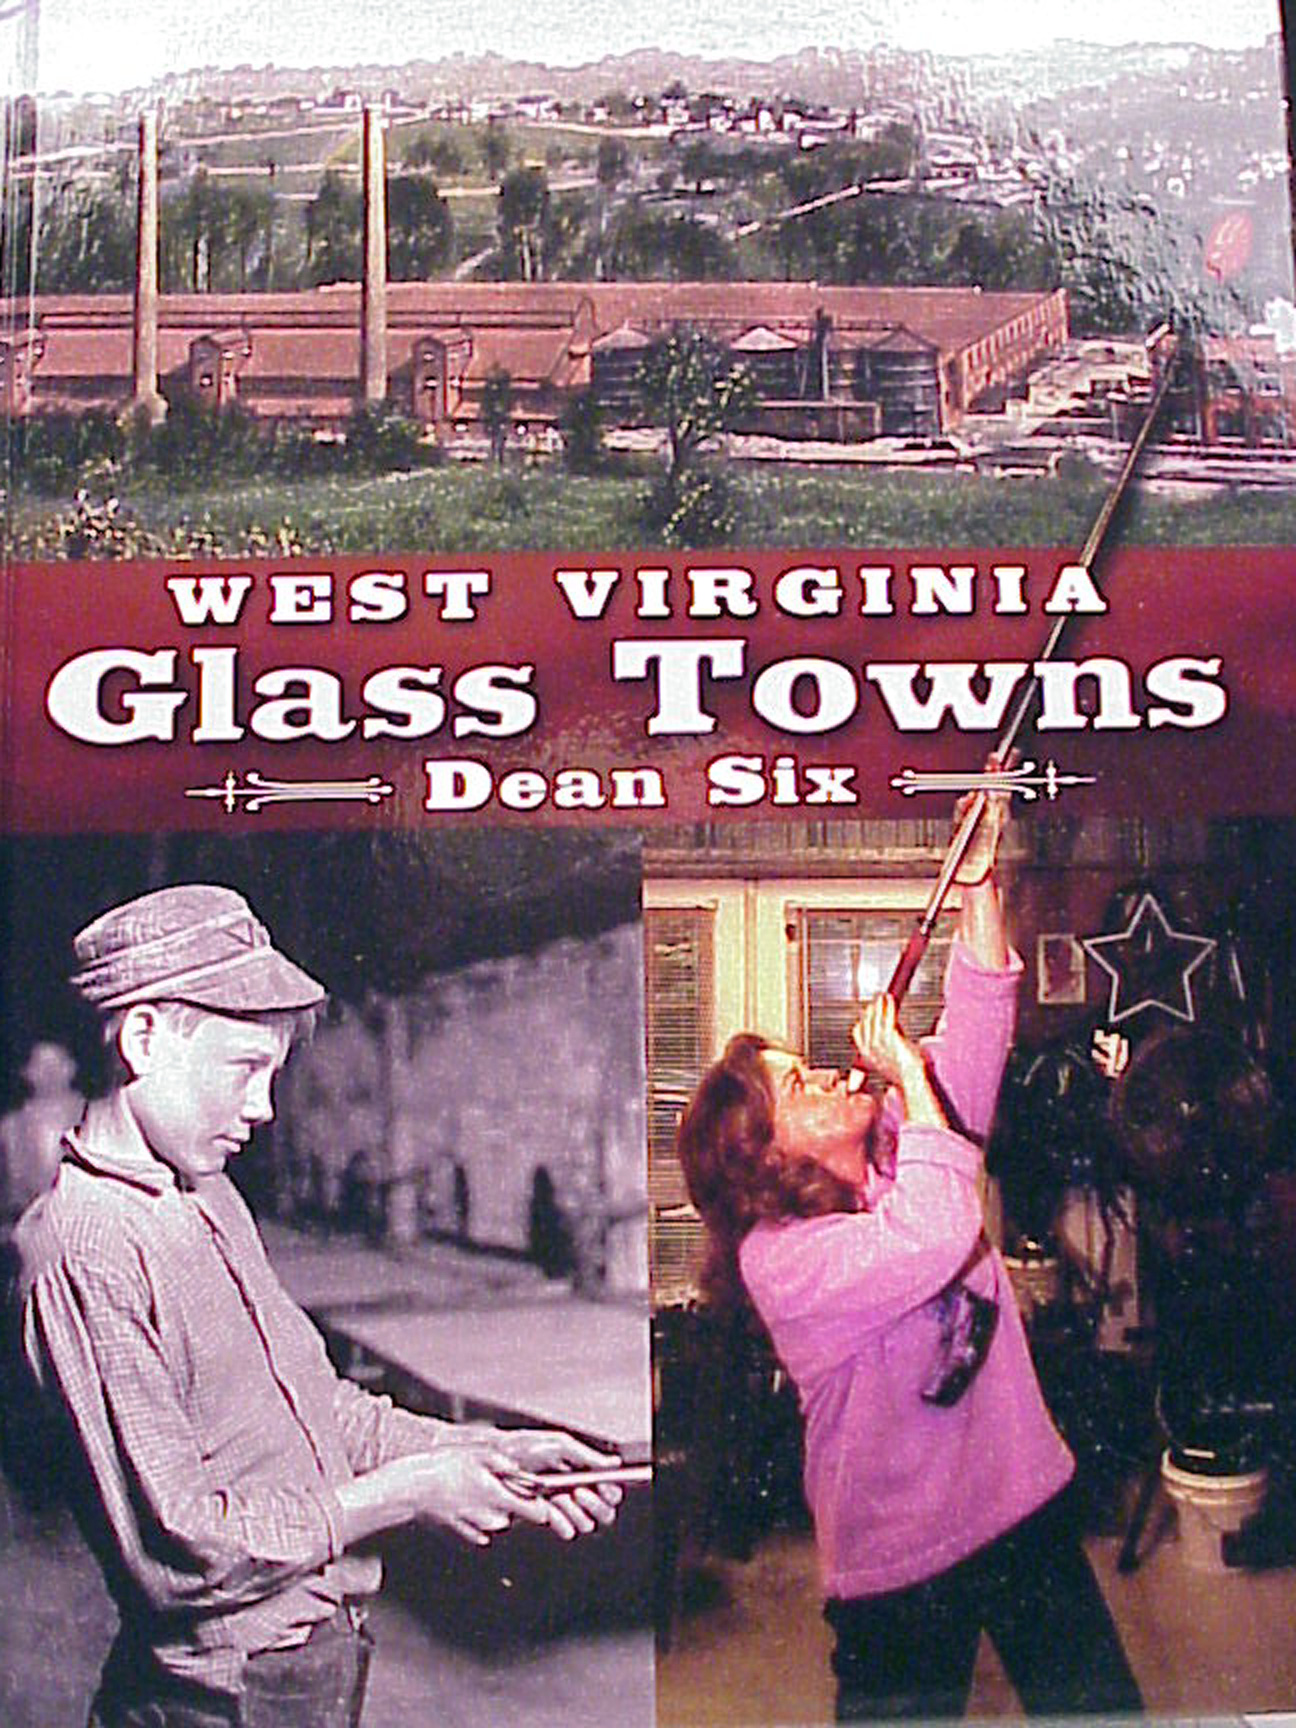 West Virginia Glass Towns by Dean Six